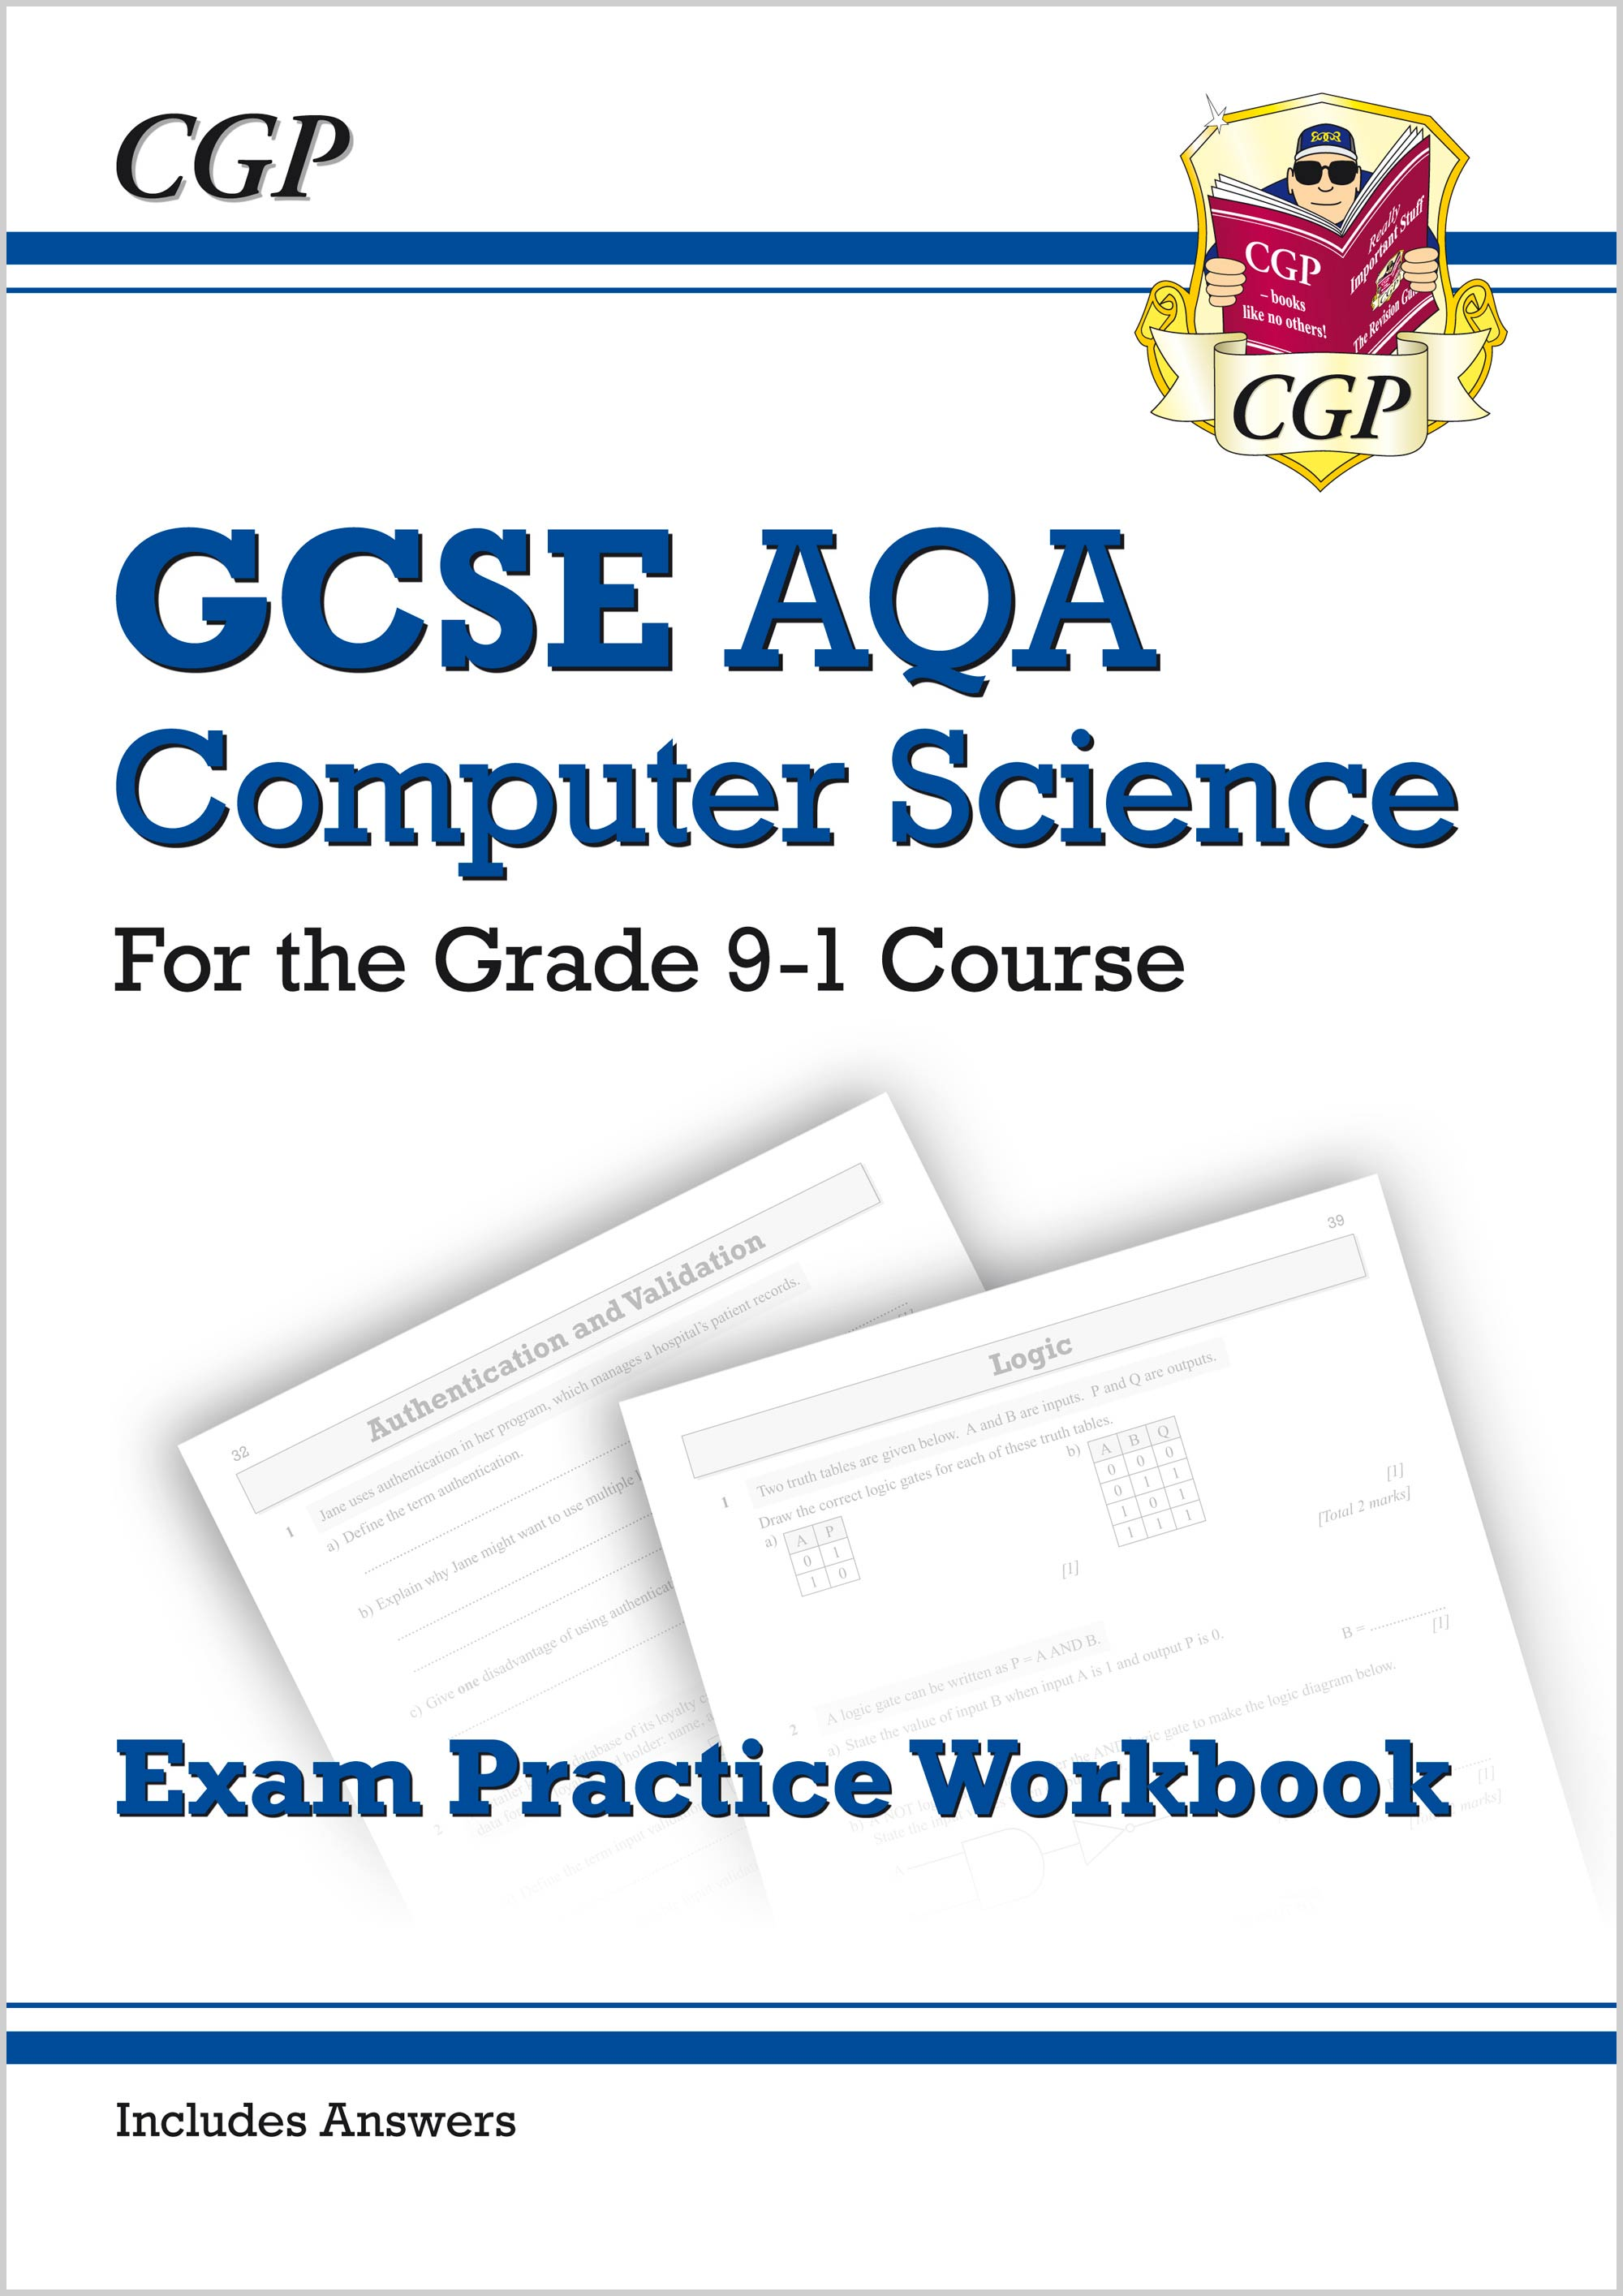 COAQ41 - New GCSE Computer Science AQA Exam Practice Workbook - for the Grade 9-1 Course (includes A